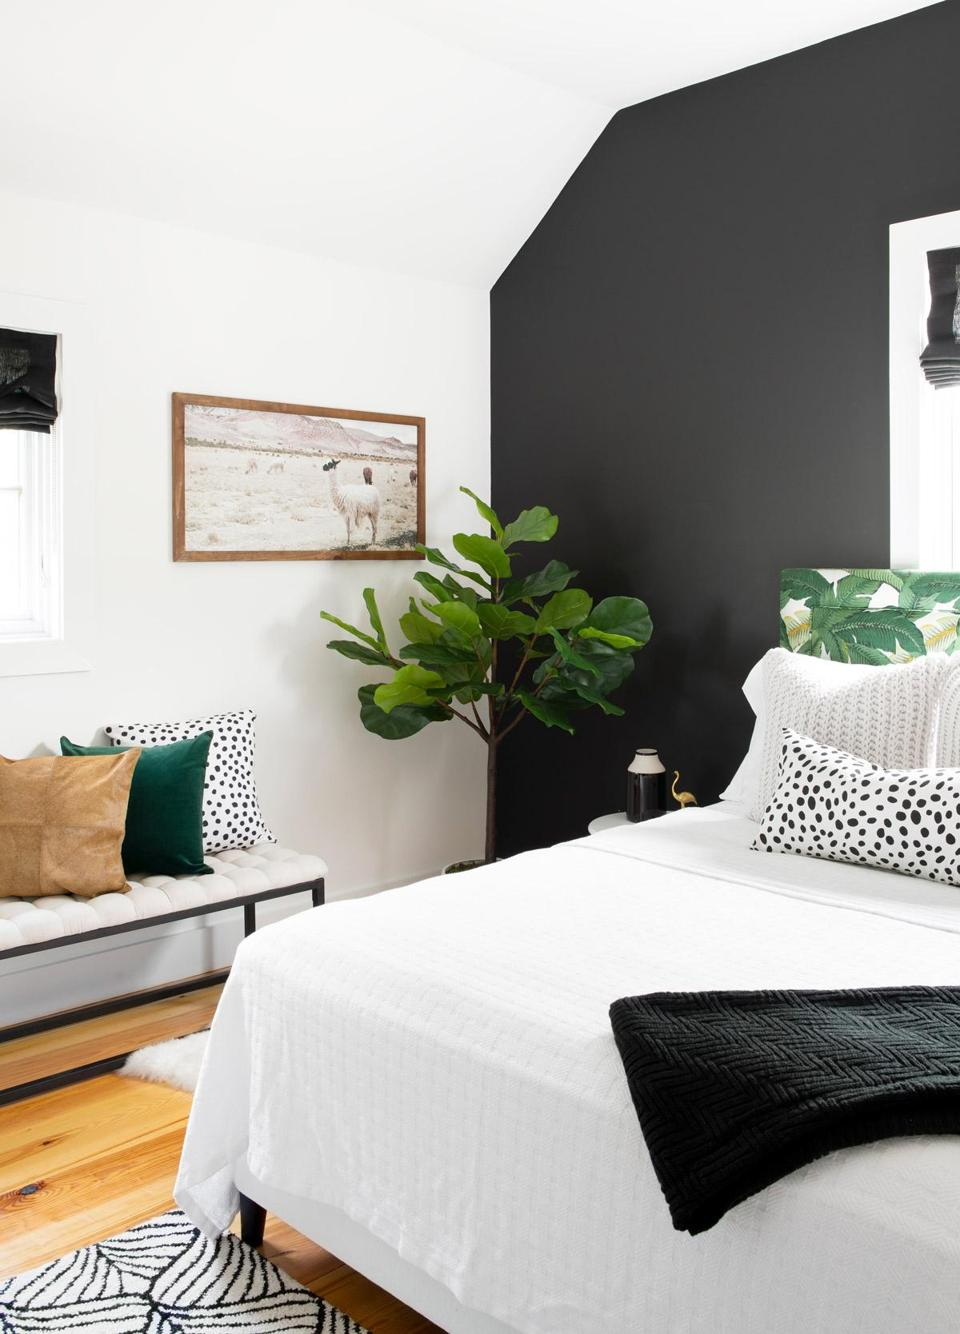 The headboard, upholstered in a tropical leaf print, pops against the black accent wall in one of the home's two guest bedrooms. The llama print is from World Market.